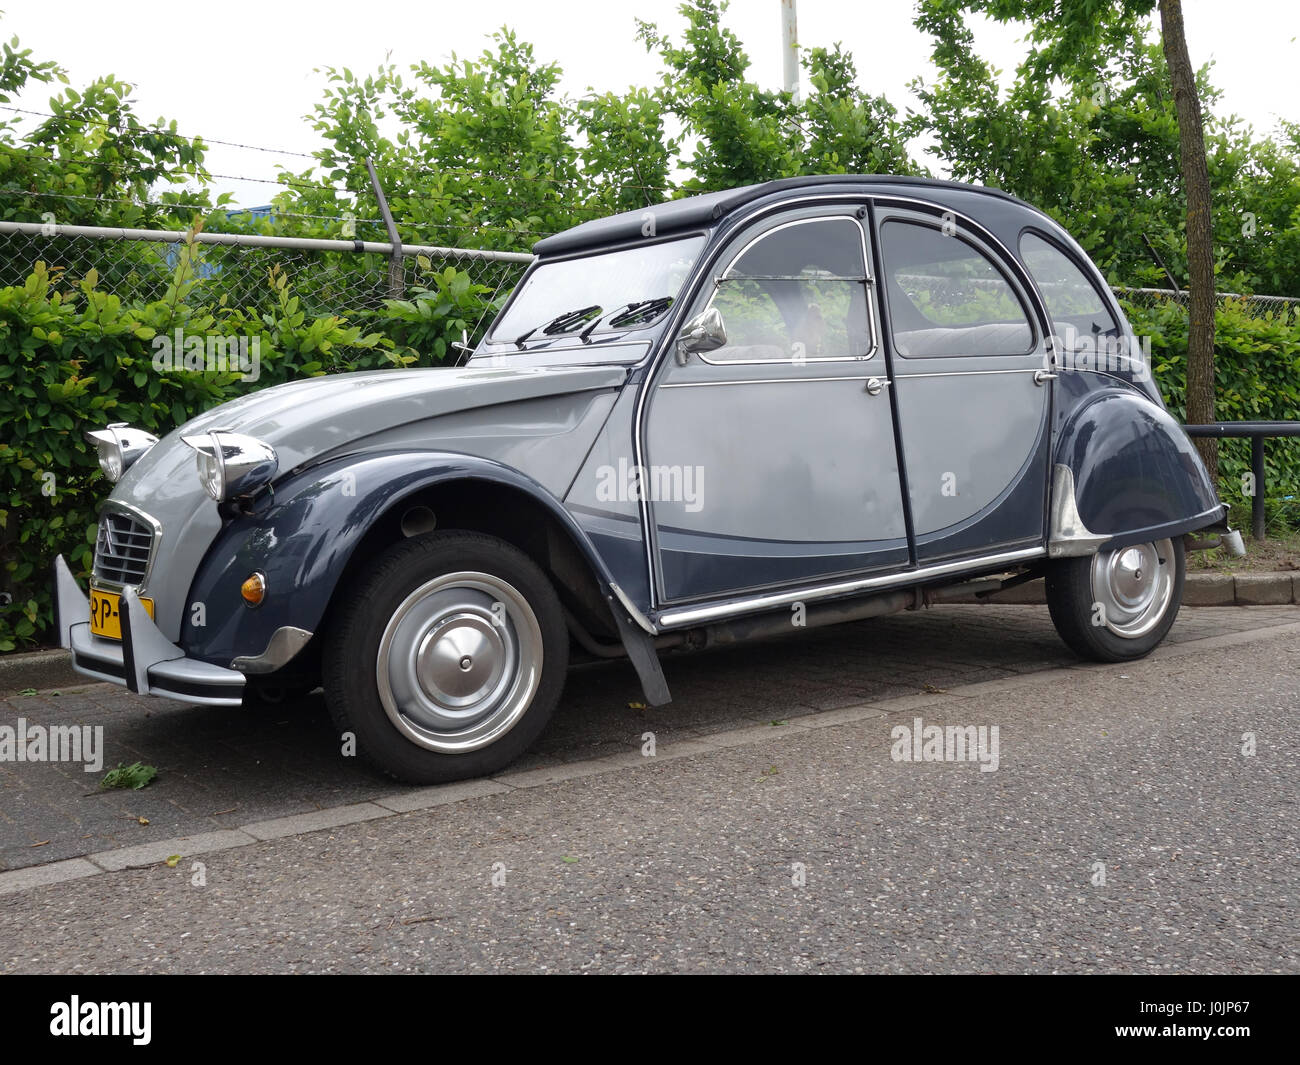 citroen 2cv deux chevaux in attractive dark and light grey colour stock photo royalty free. Black Bedroom Furniture Sets. Home Design Ideas